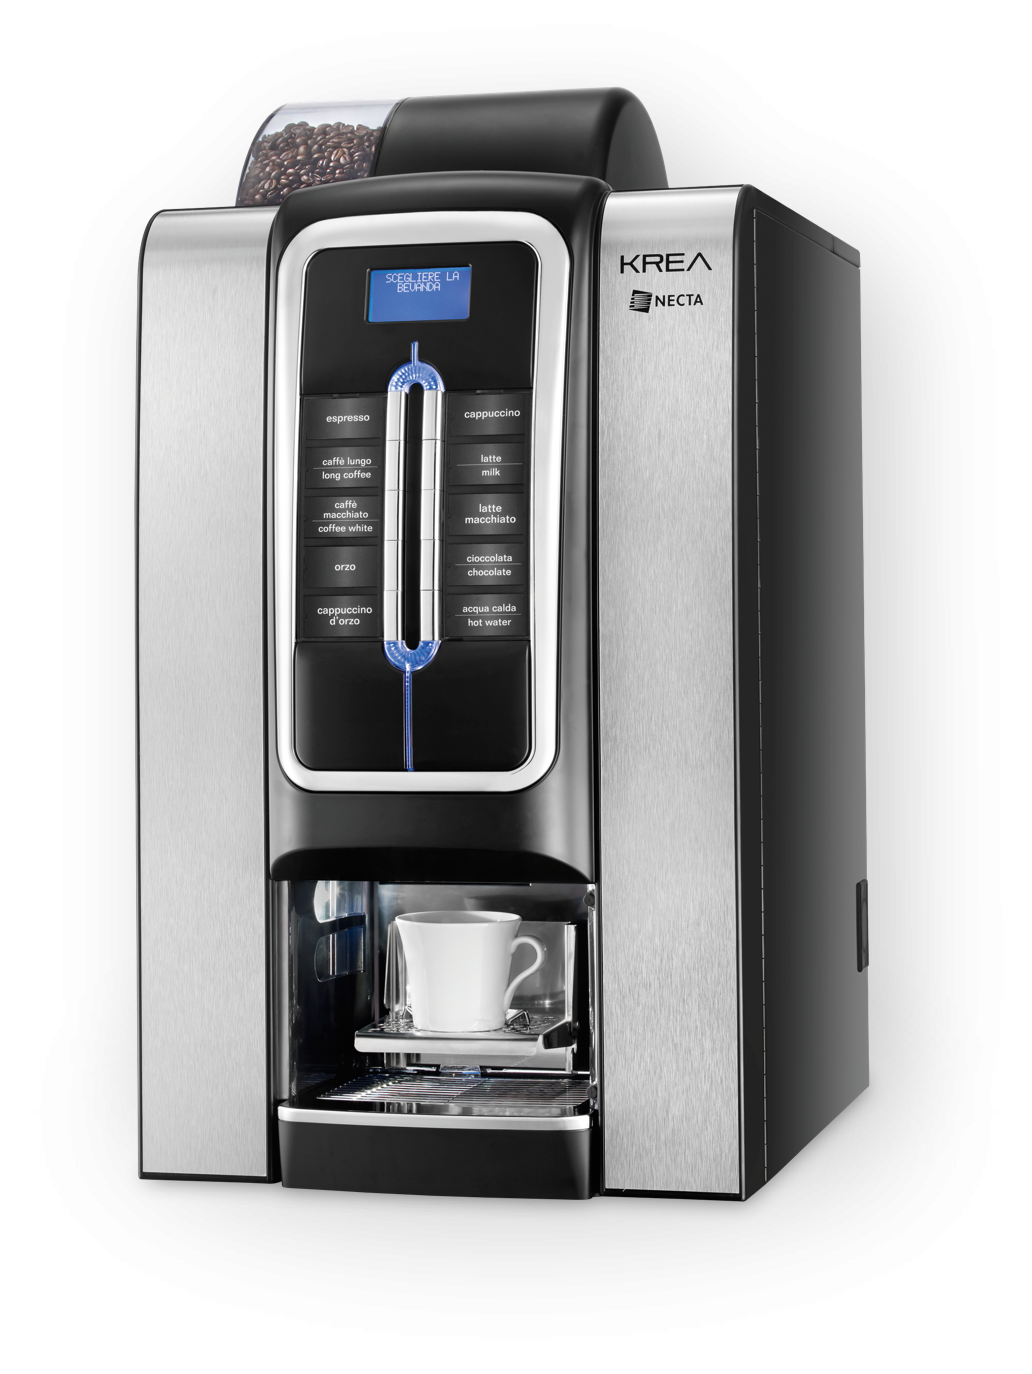 Krea Necta Coffee machines 2nd hand for sale - up to 90 espresso per hour